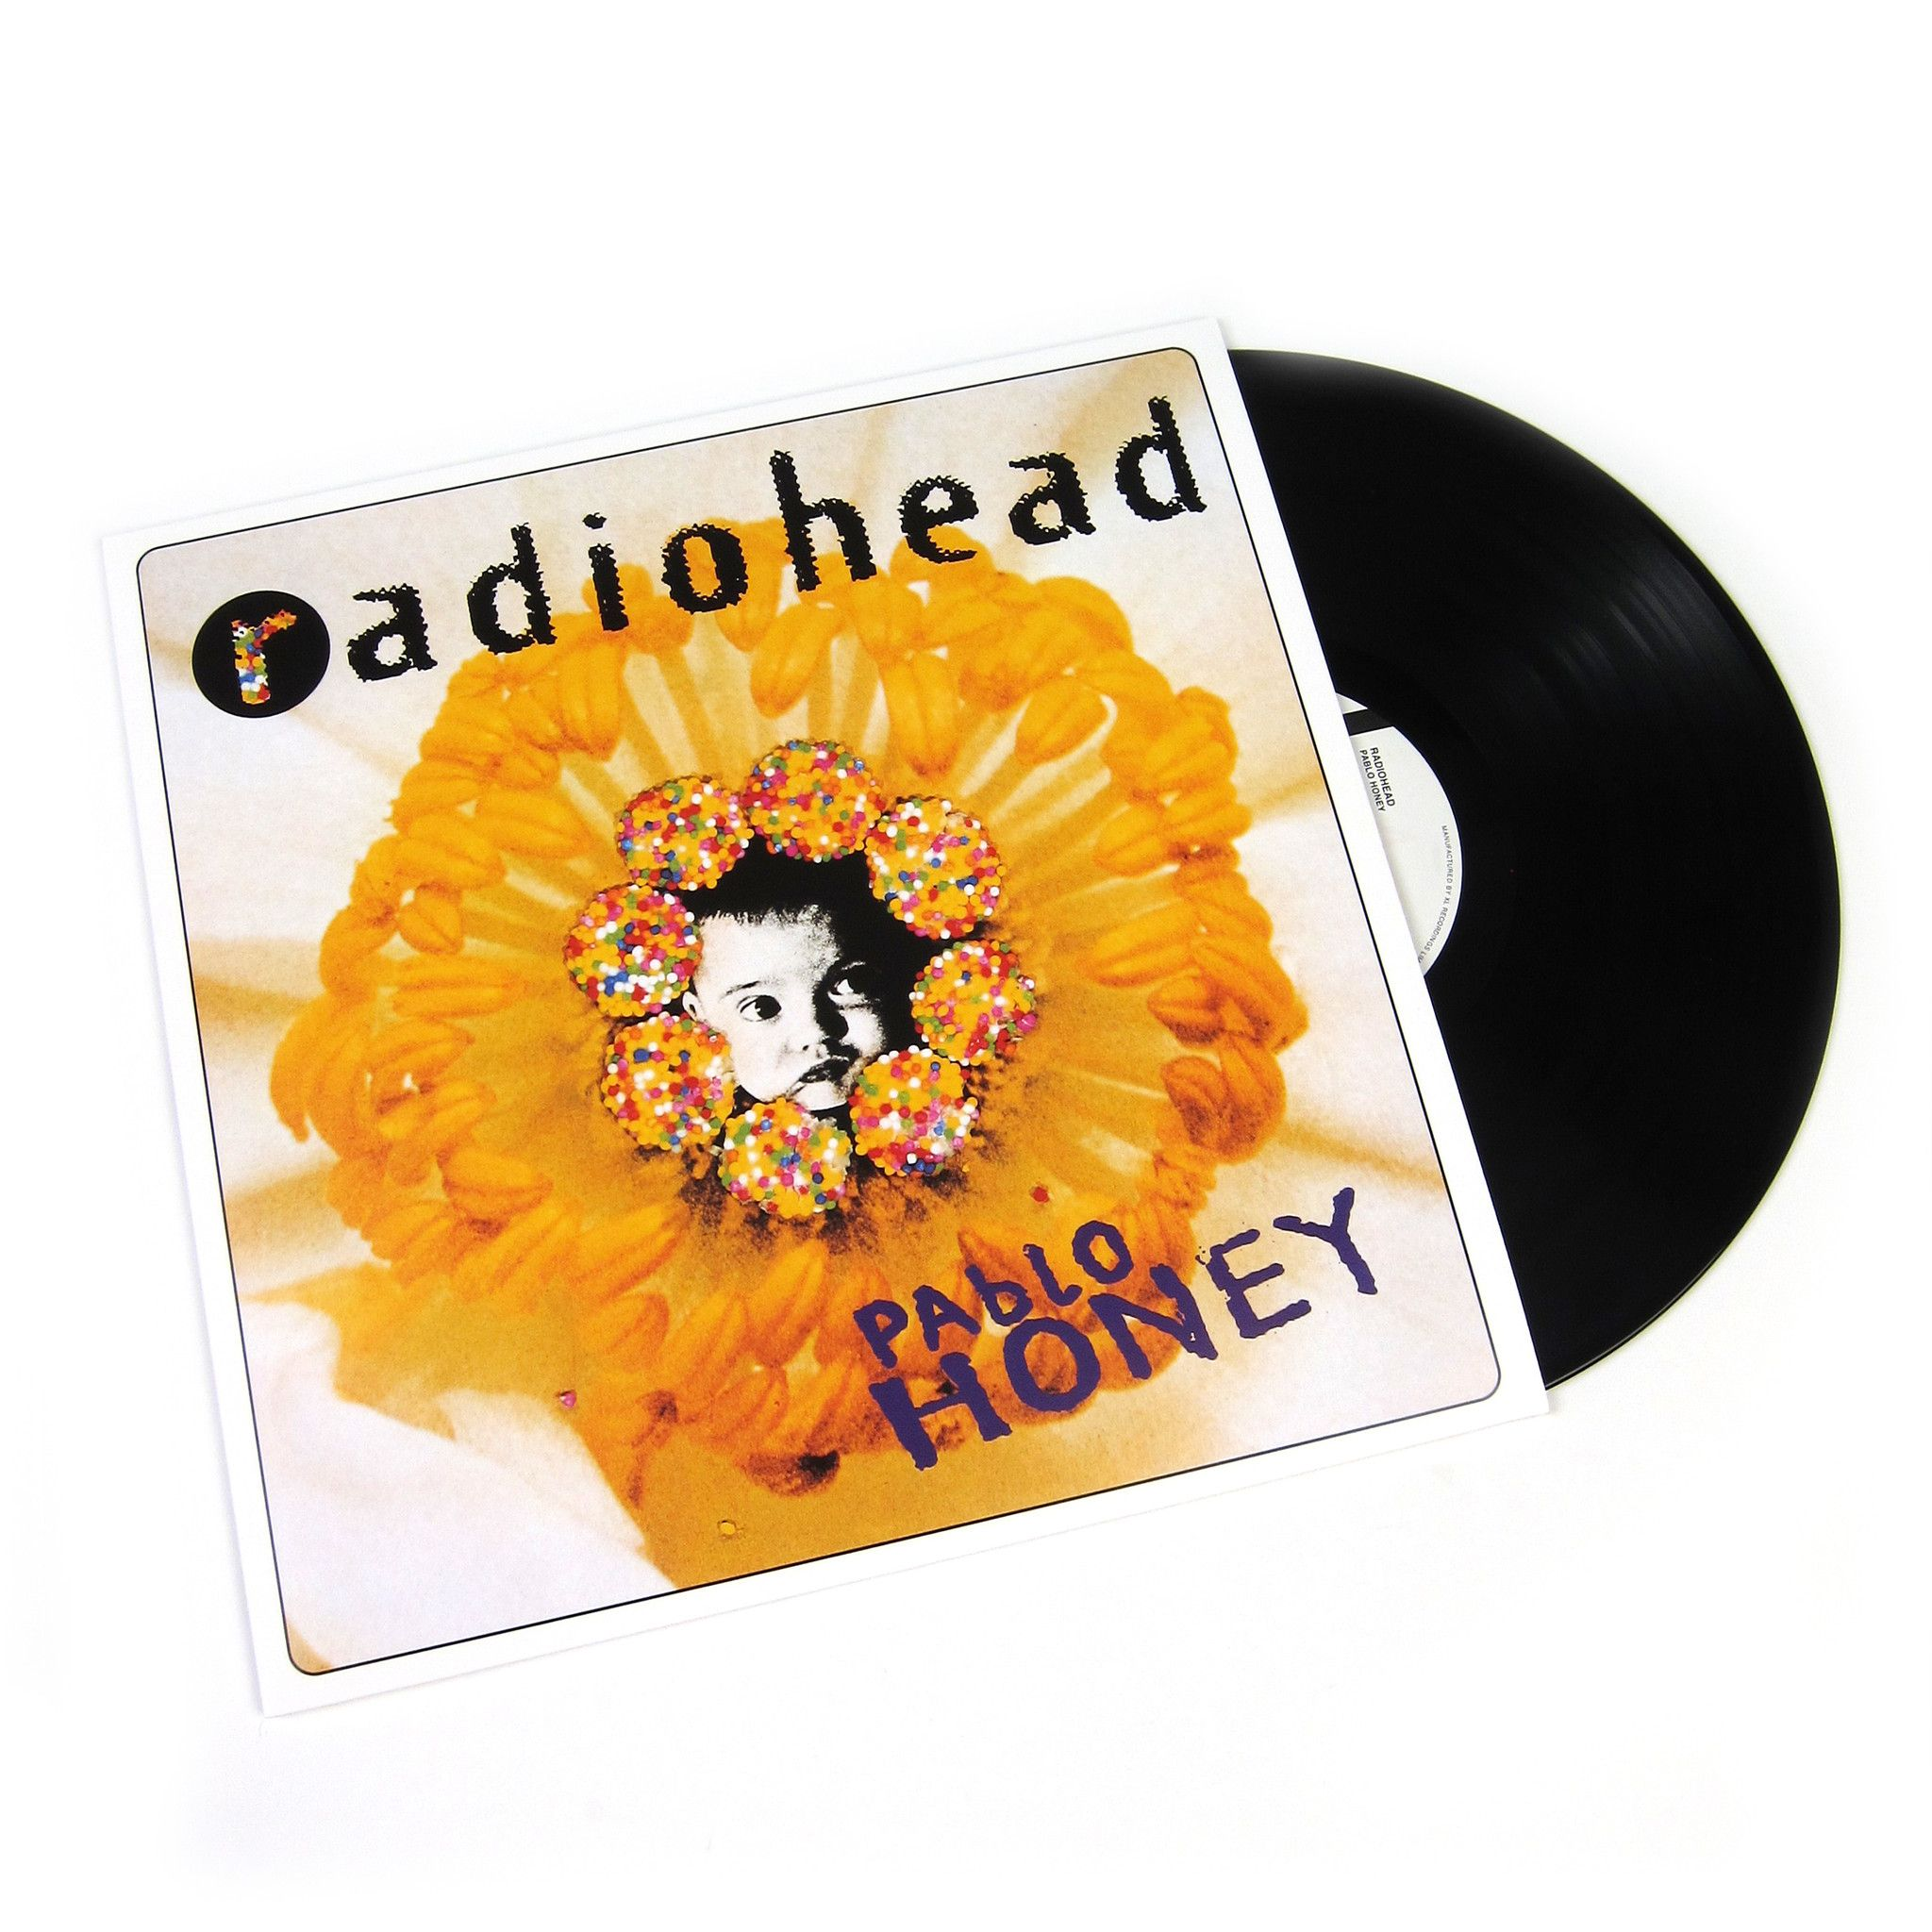 Radiohead Pablo Honey Vinyl Lp Pablo Honey Radiohead Vinyl